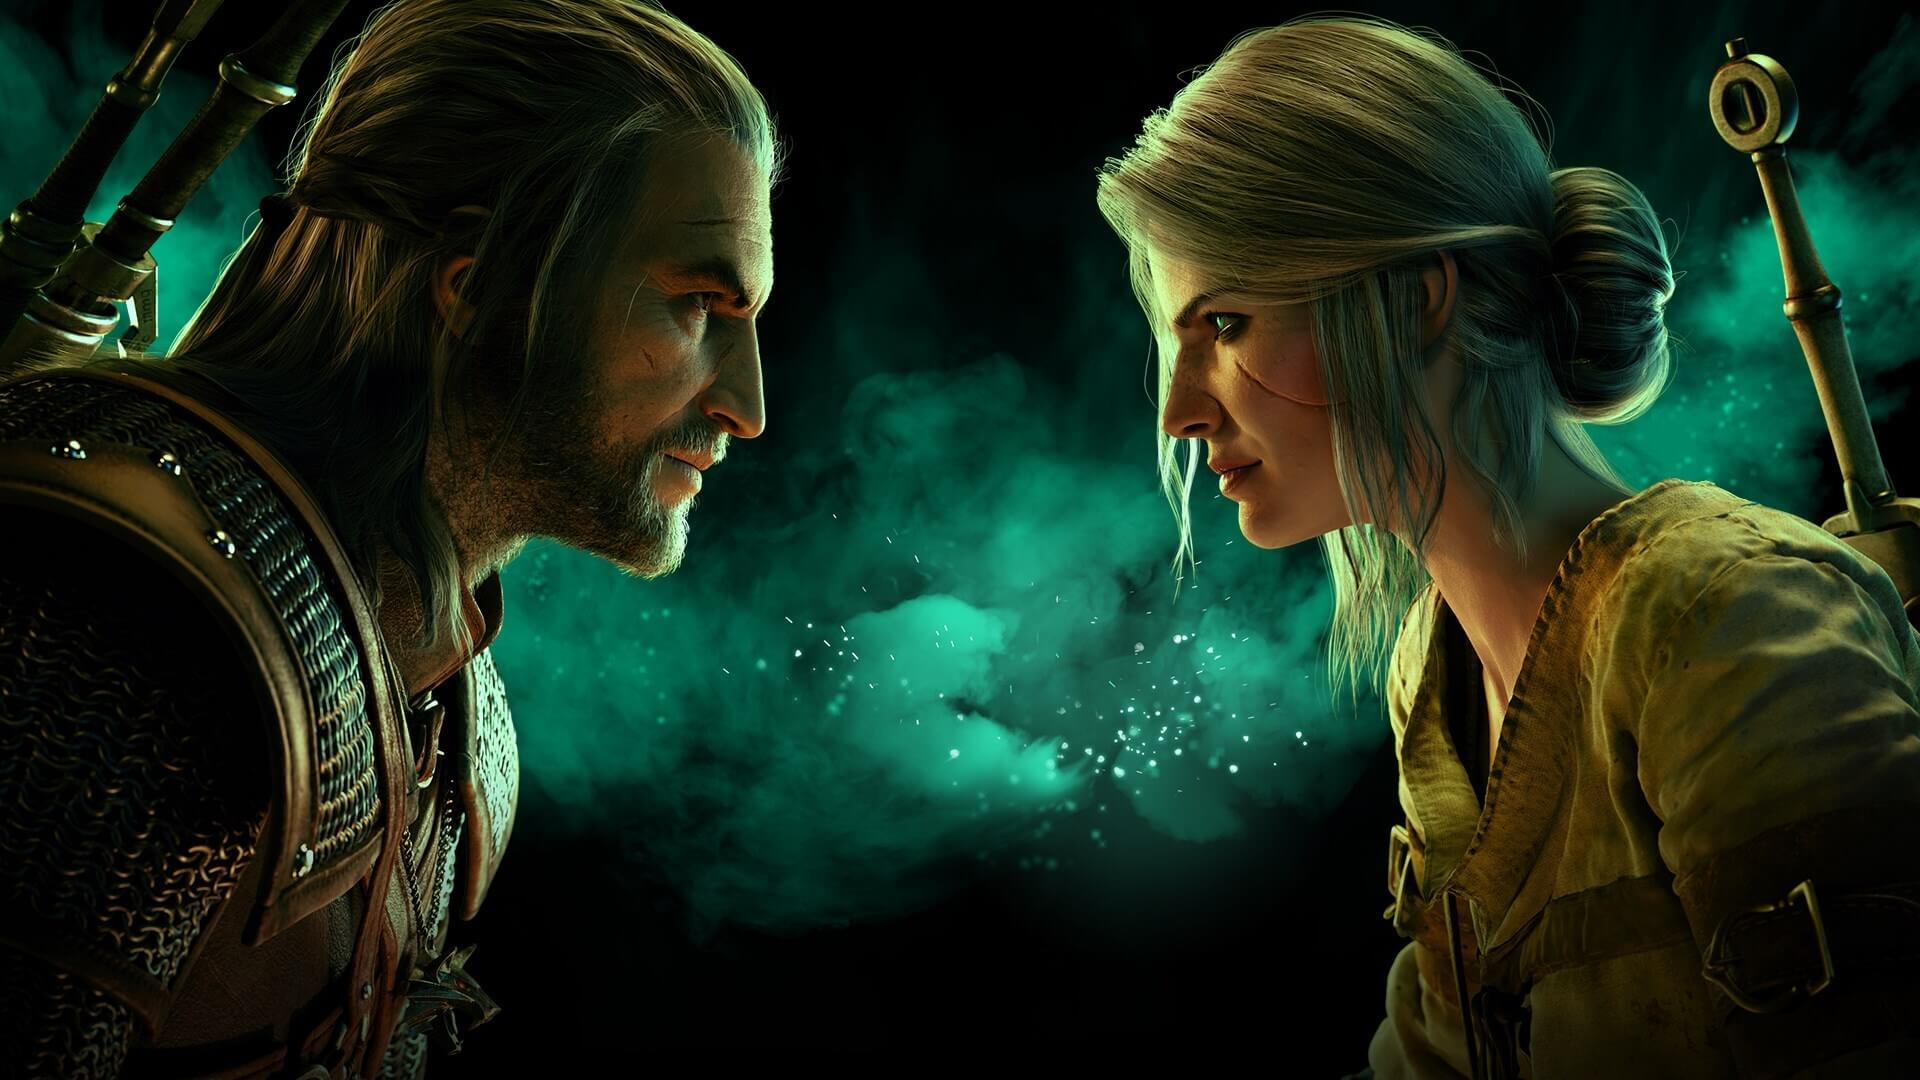 CD Projekt discontinuing support for Witcher card game Gwent on consoles